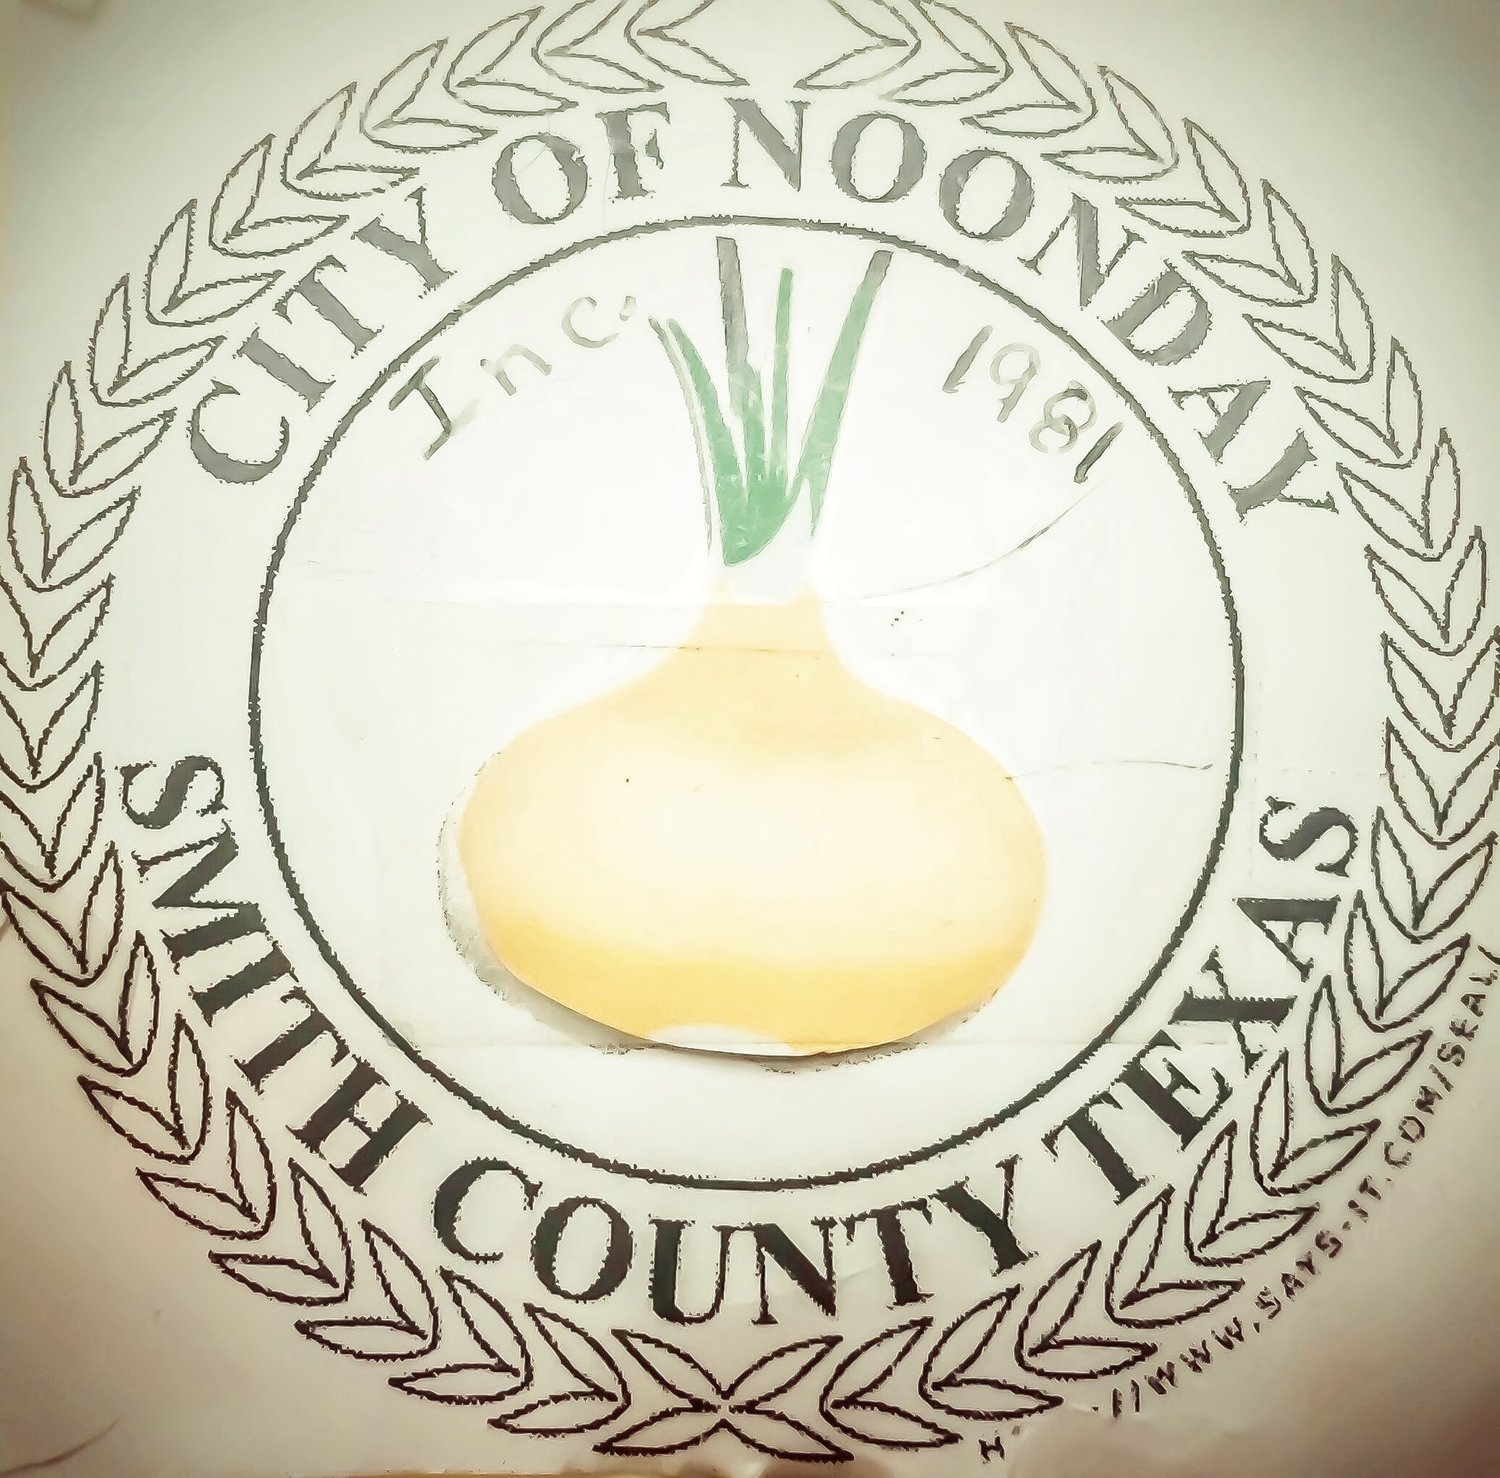 City of Noonday